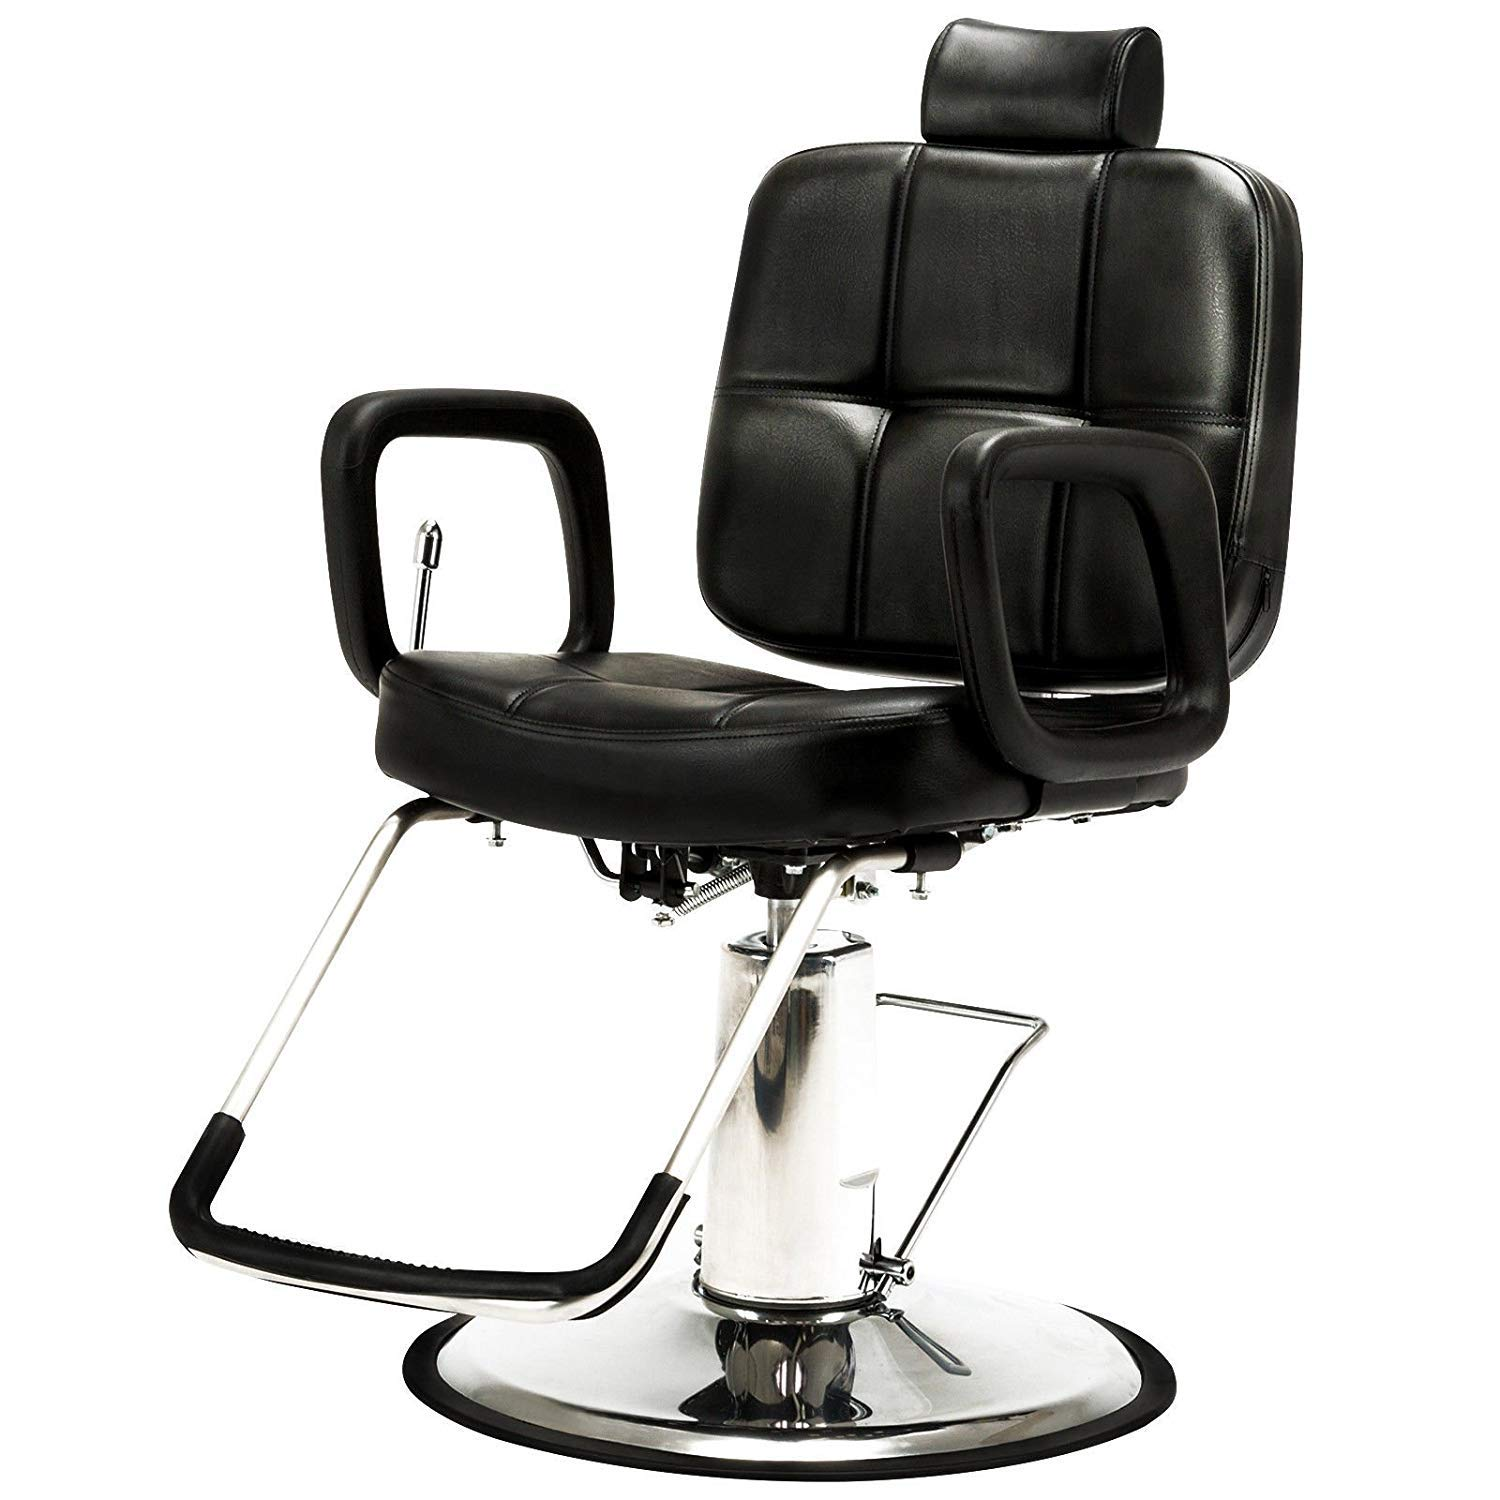 Vosson Salon Chair Reclining Hydraulic Chair 360 Degrees Swivel Barber Chair Tattoo Chairs Heavy Duty Hydraulic Pump Barbering Chair Hair Stylist Chair by Vosson